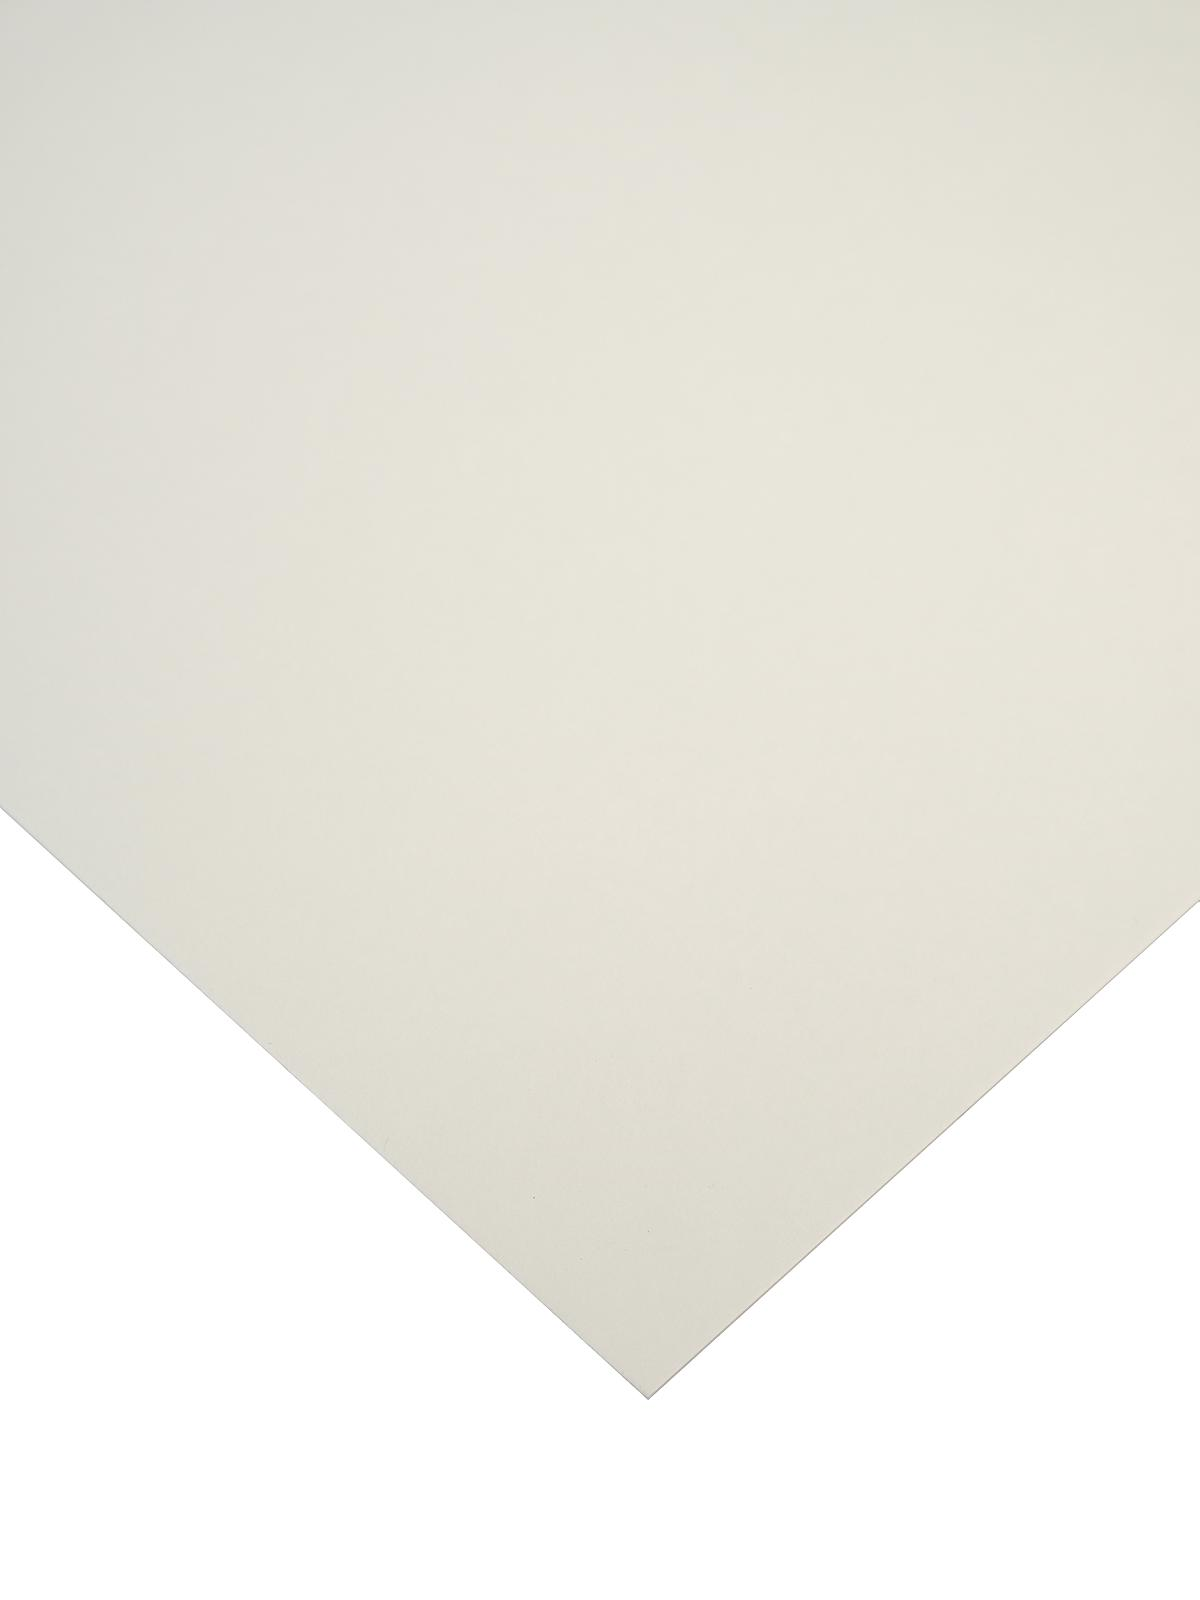 Hot Press Illustration Boards 20 In. X 30 In. Each No. 201